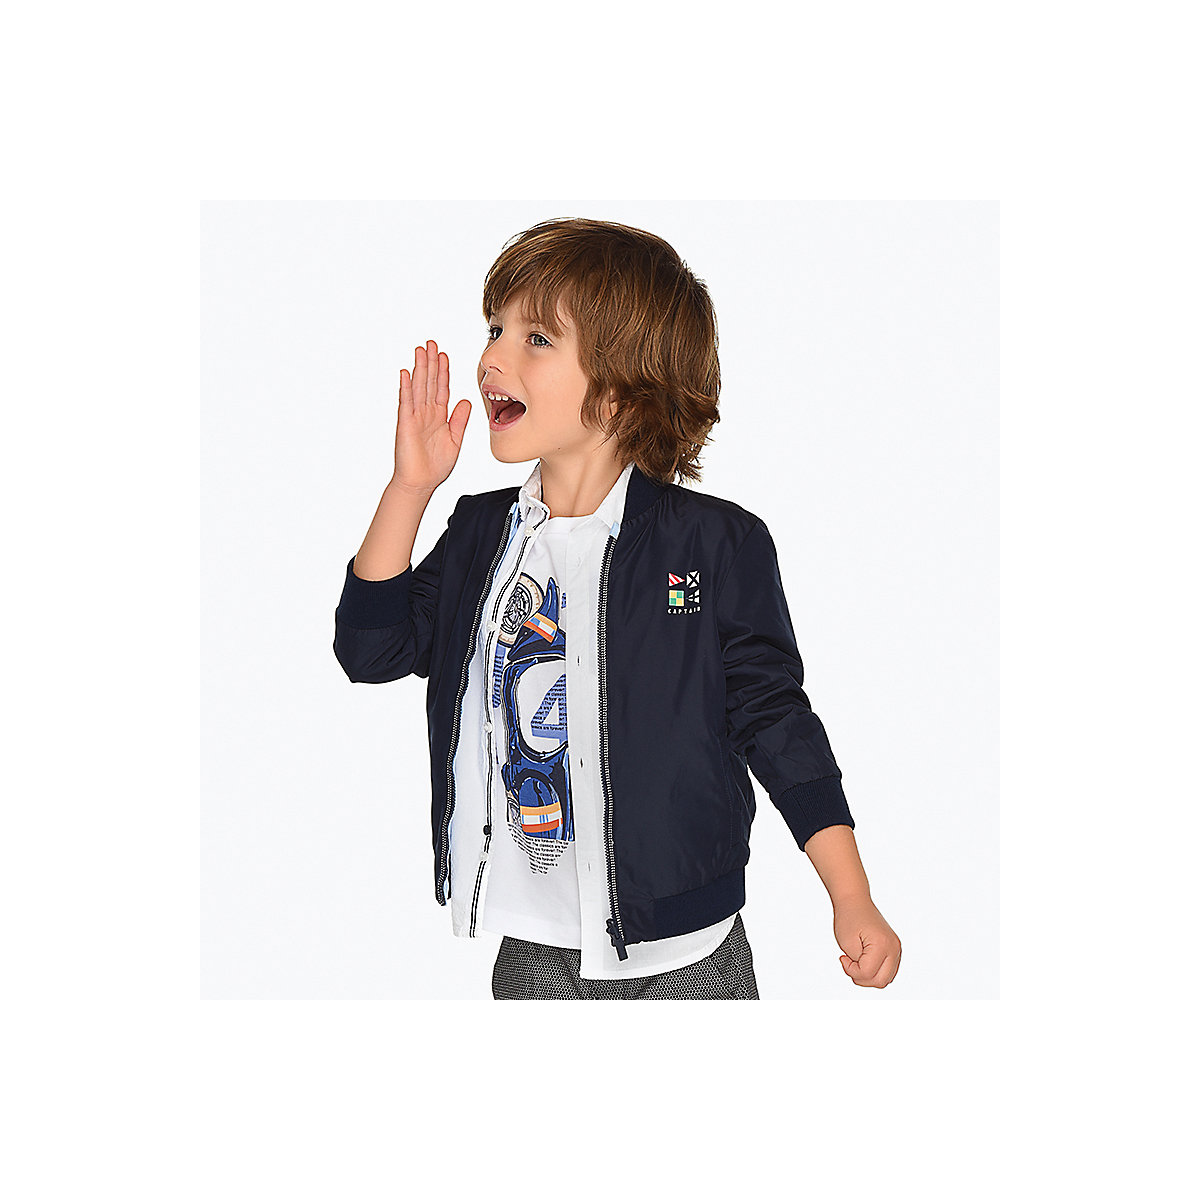 Фото - Mayoral Jackets & Coats 10690924 jacket for boys coat baby clothes children clothing outwear boy reima jackets 8688821 for boys polyester winter fur clothes boy